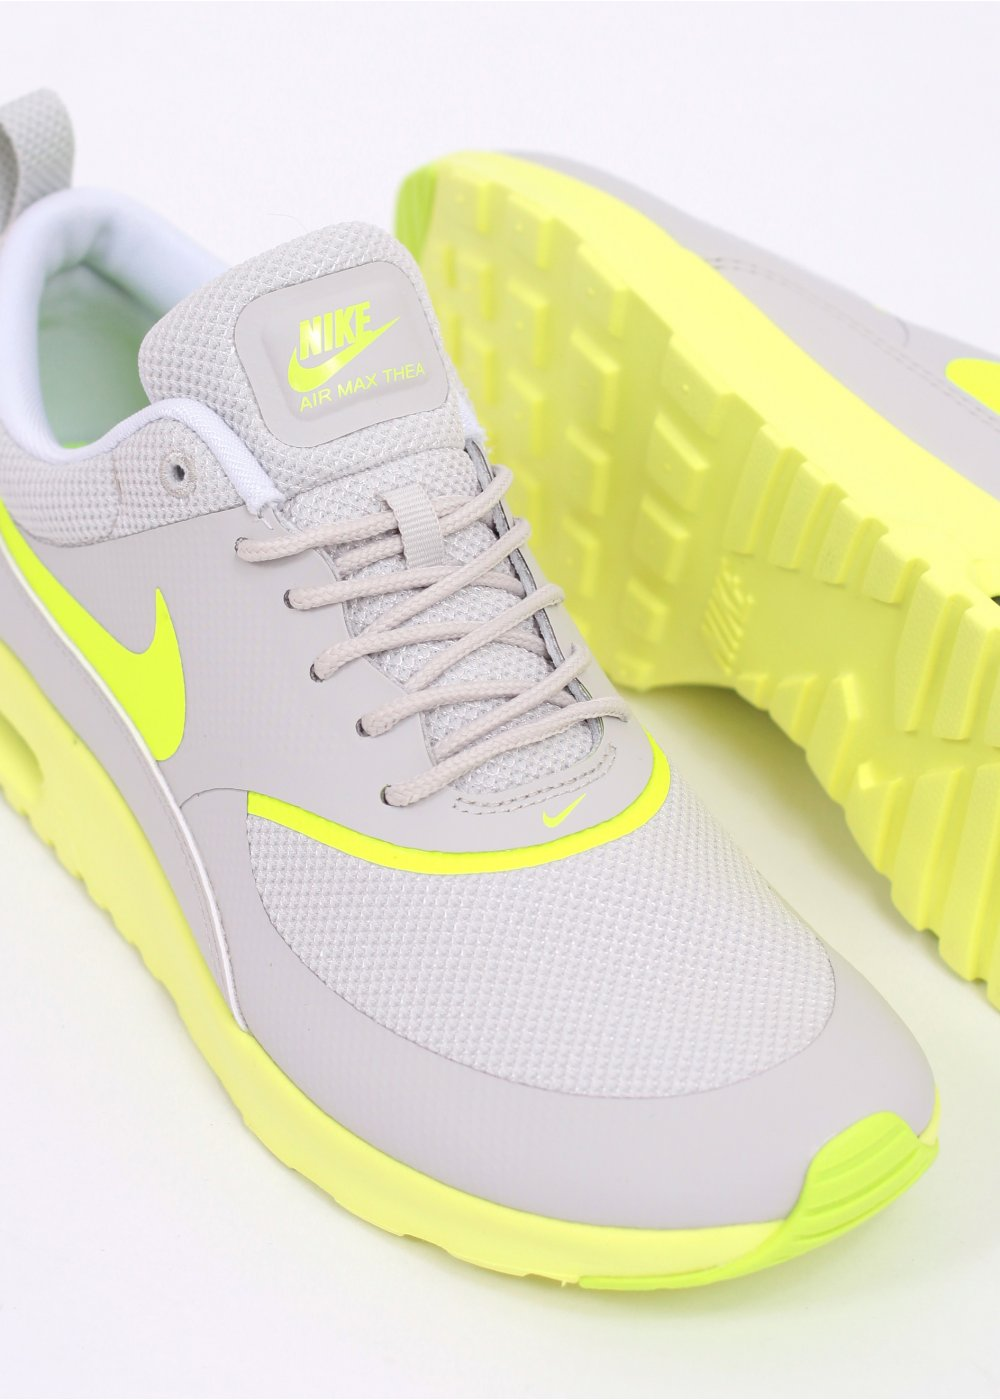 Nike Grey Air Max Thea Trainers Nike Air Max Thea Trainers